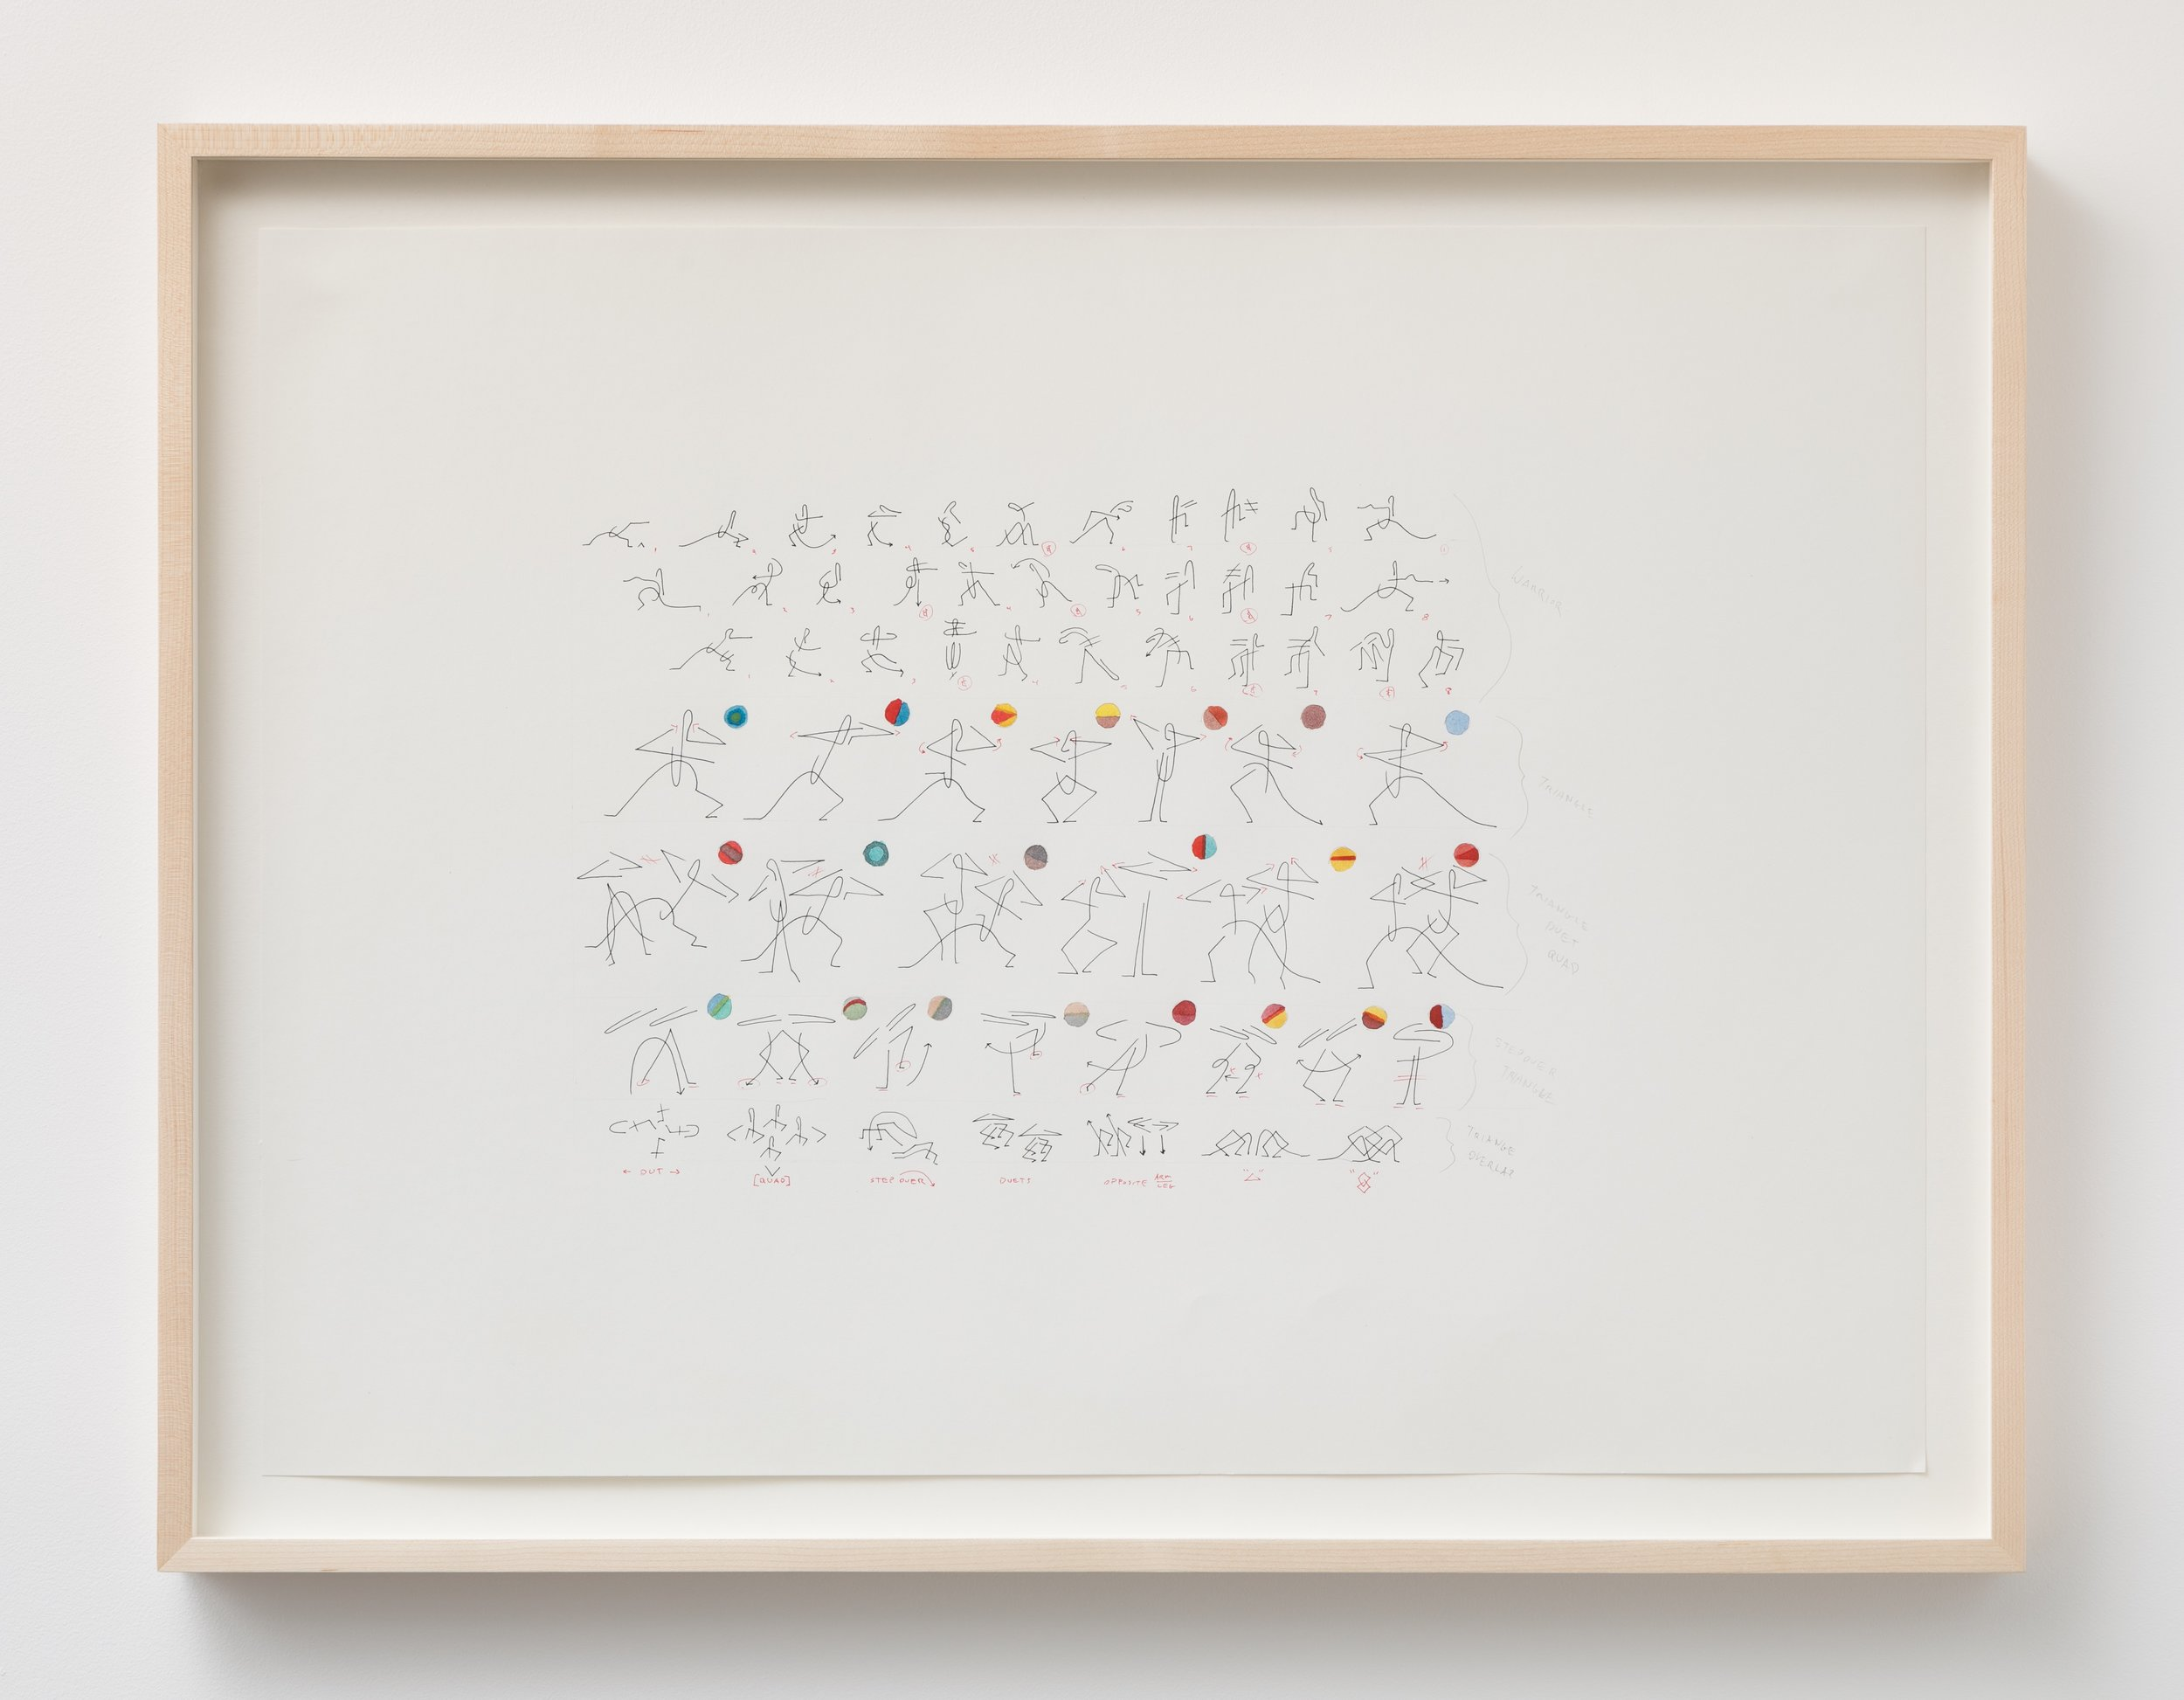 Madeline Hollander   Temperature Sequence #5: Core Power , 2018, Watercolor, graphite, and ink on paper, 18 x 24 inches